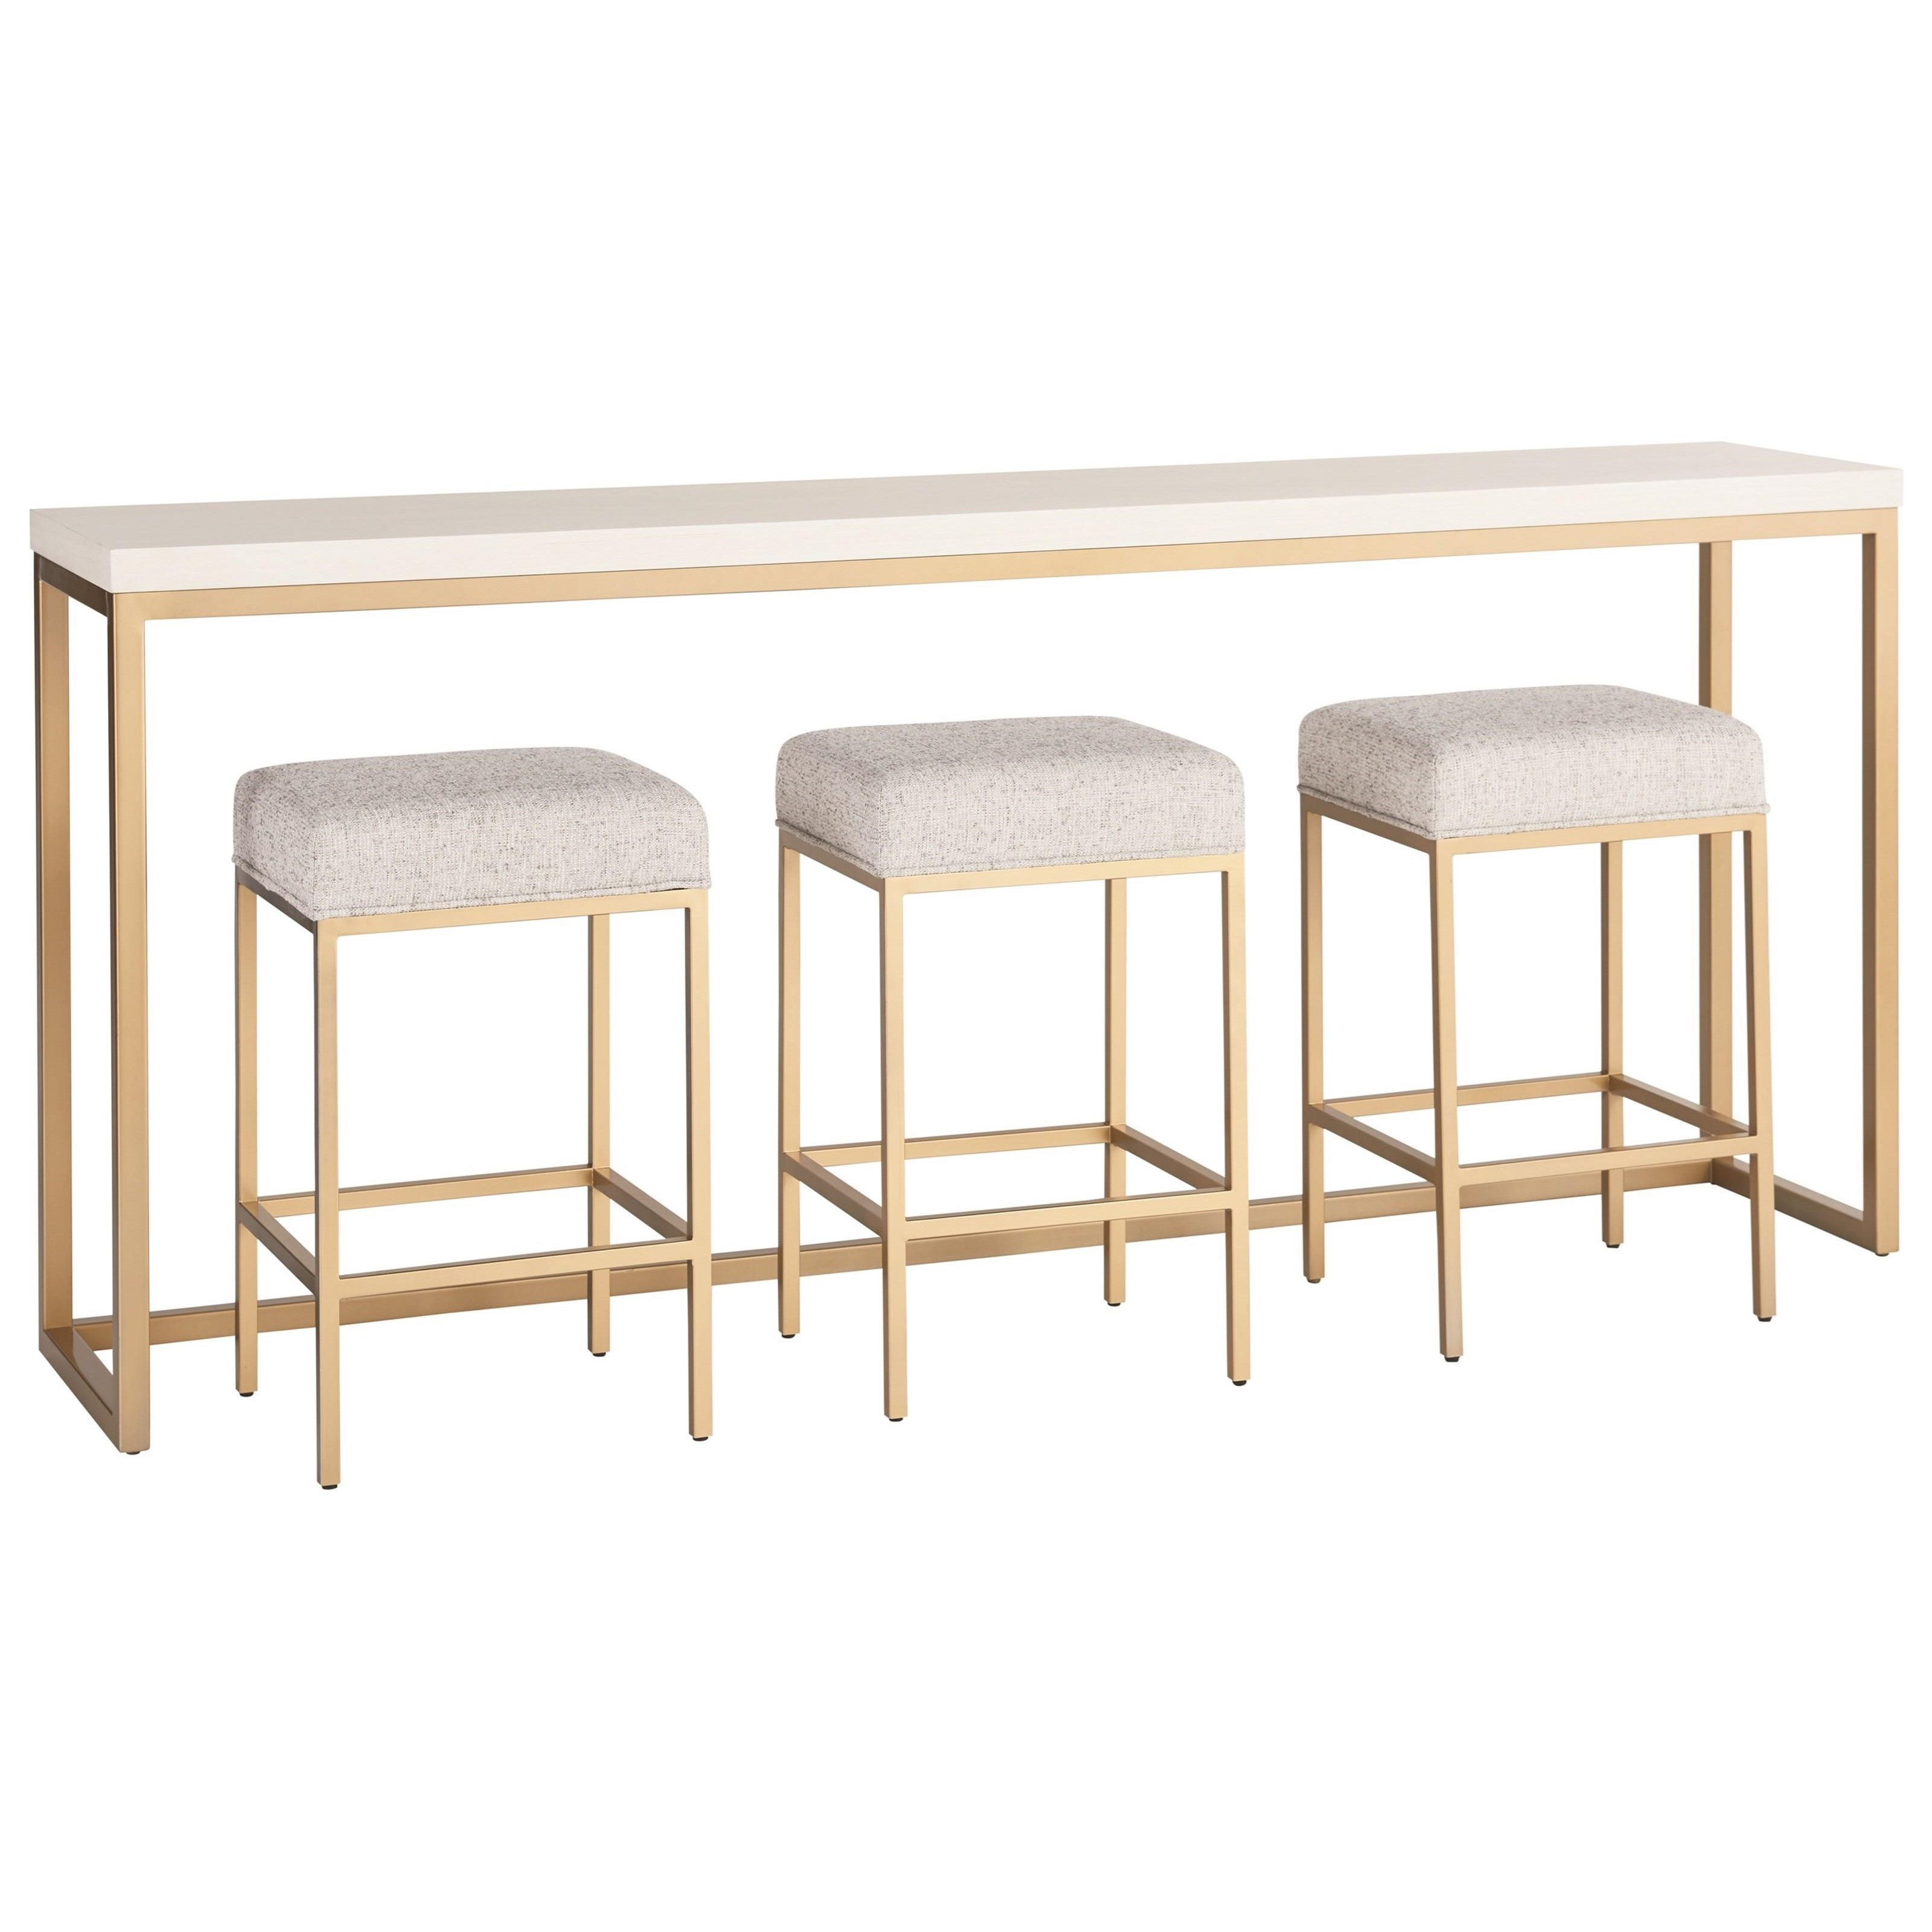 Love. Joy. Bliss.-Miranda Kerr Home Console Table by Universal at Stoney Creek Furniture